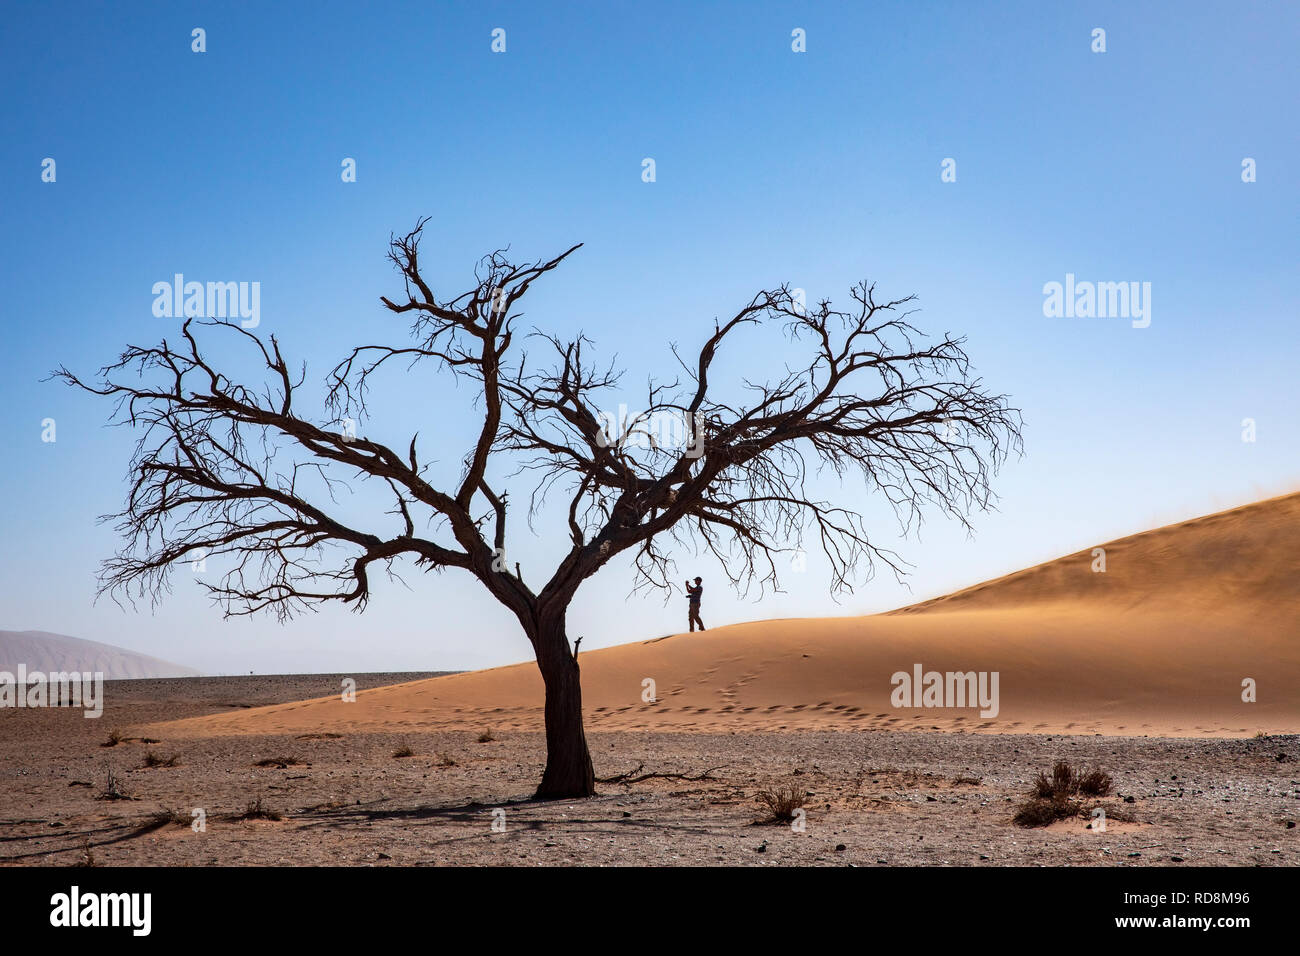 Person taking pictues on Dune 45 in Namib-Naukluft National Park, Namibia, Africa Stock Photo